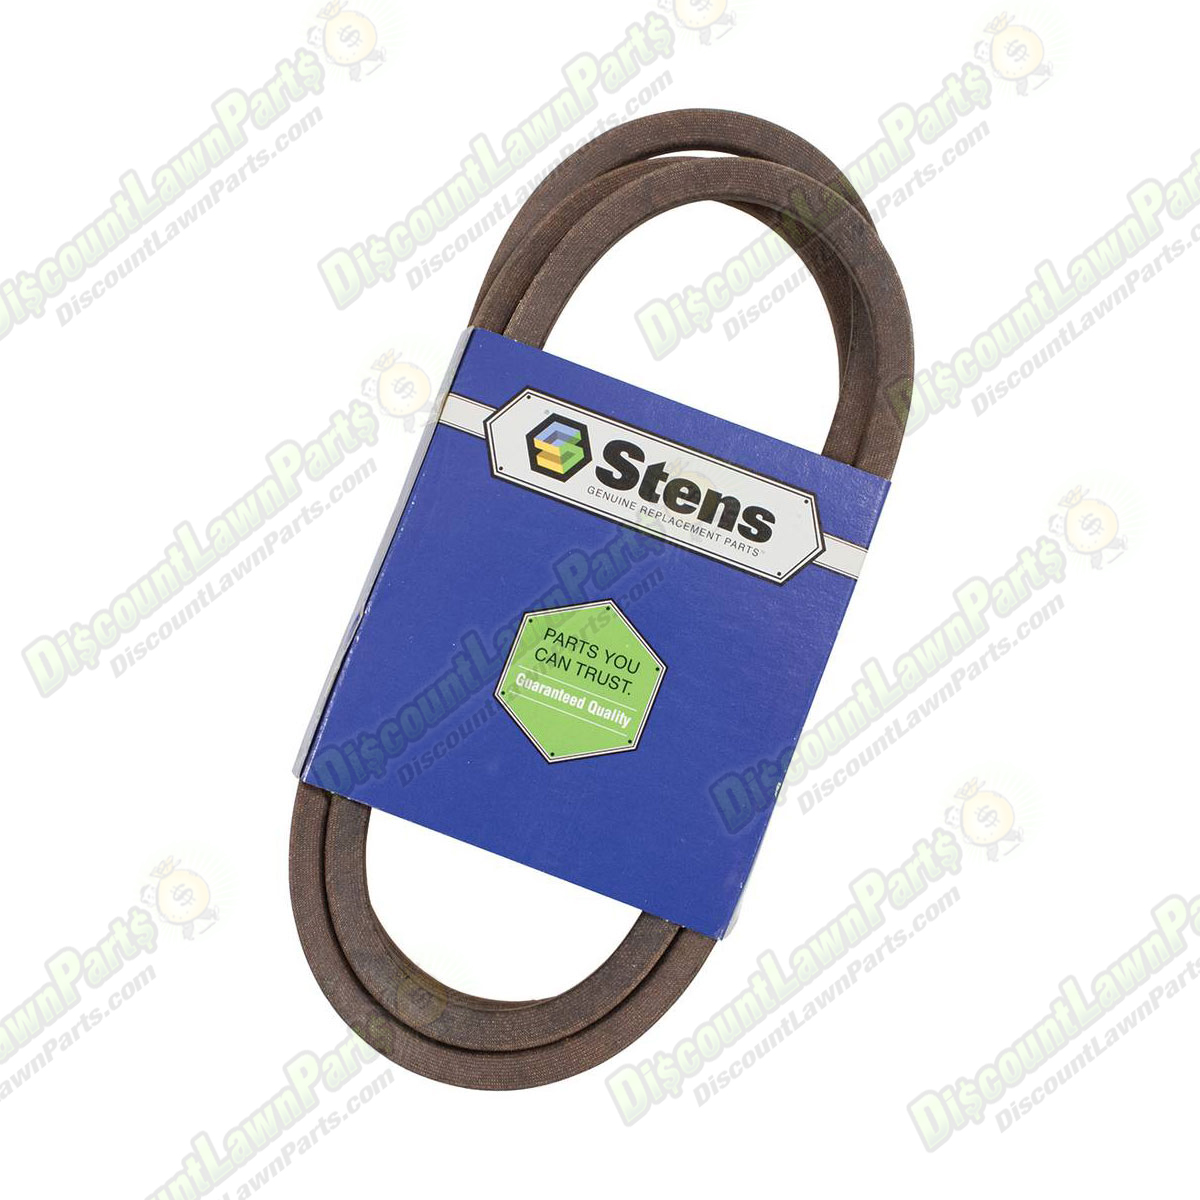 Quick Sh New CROSSBAND COUPLER UFF 150 MHZ 800 MHZ By M//A COM SAVE Money Here